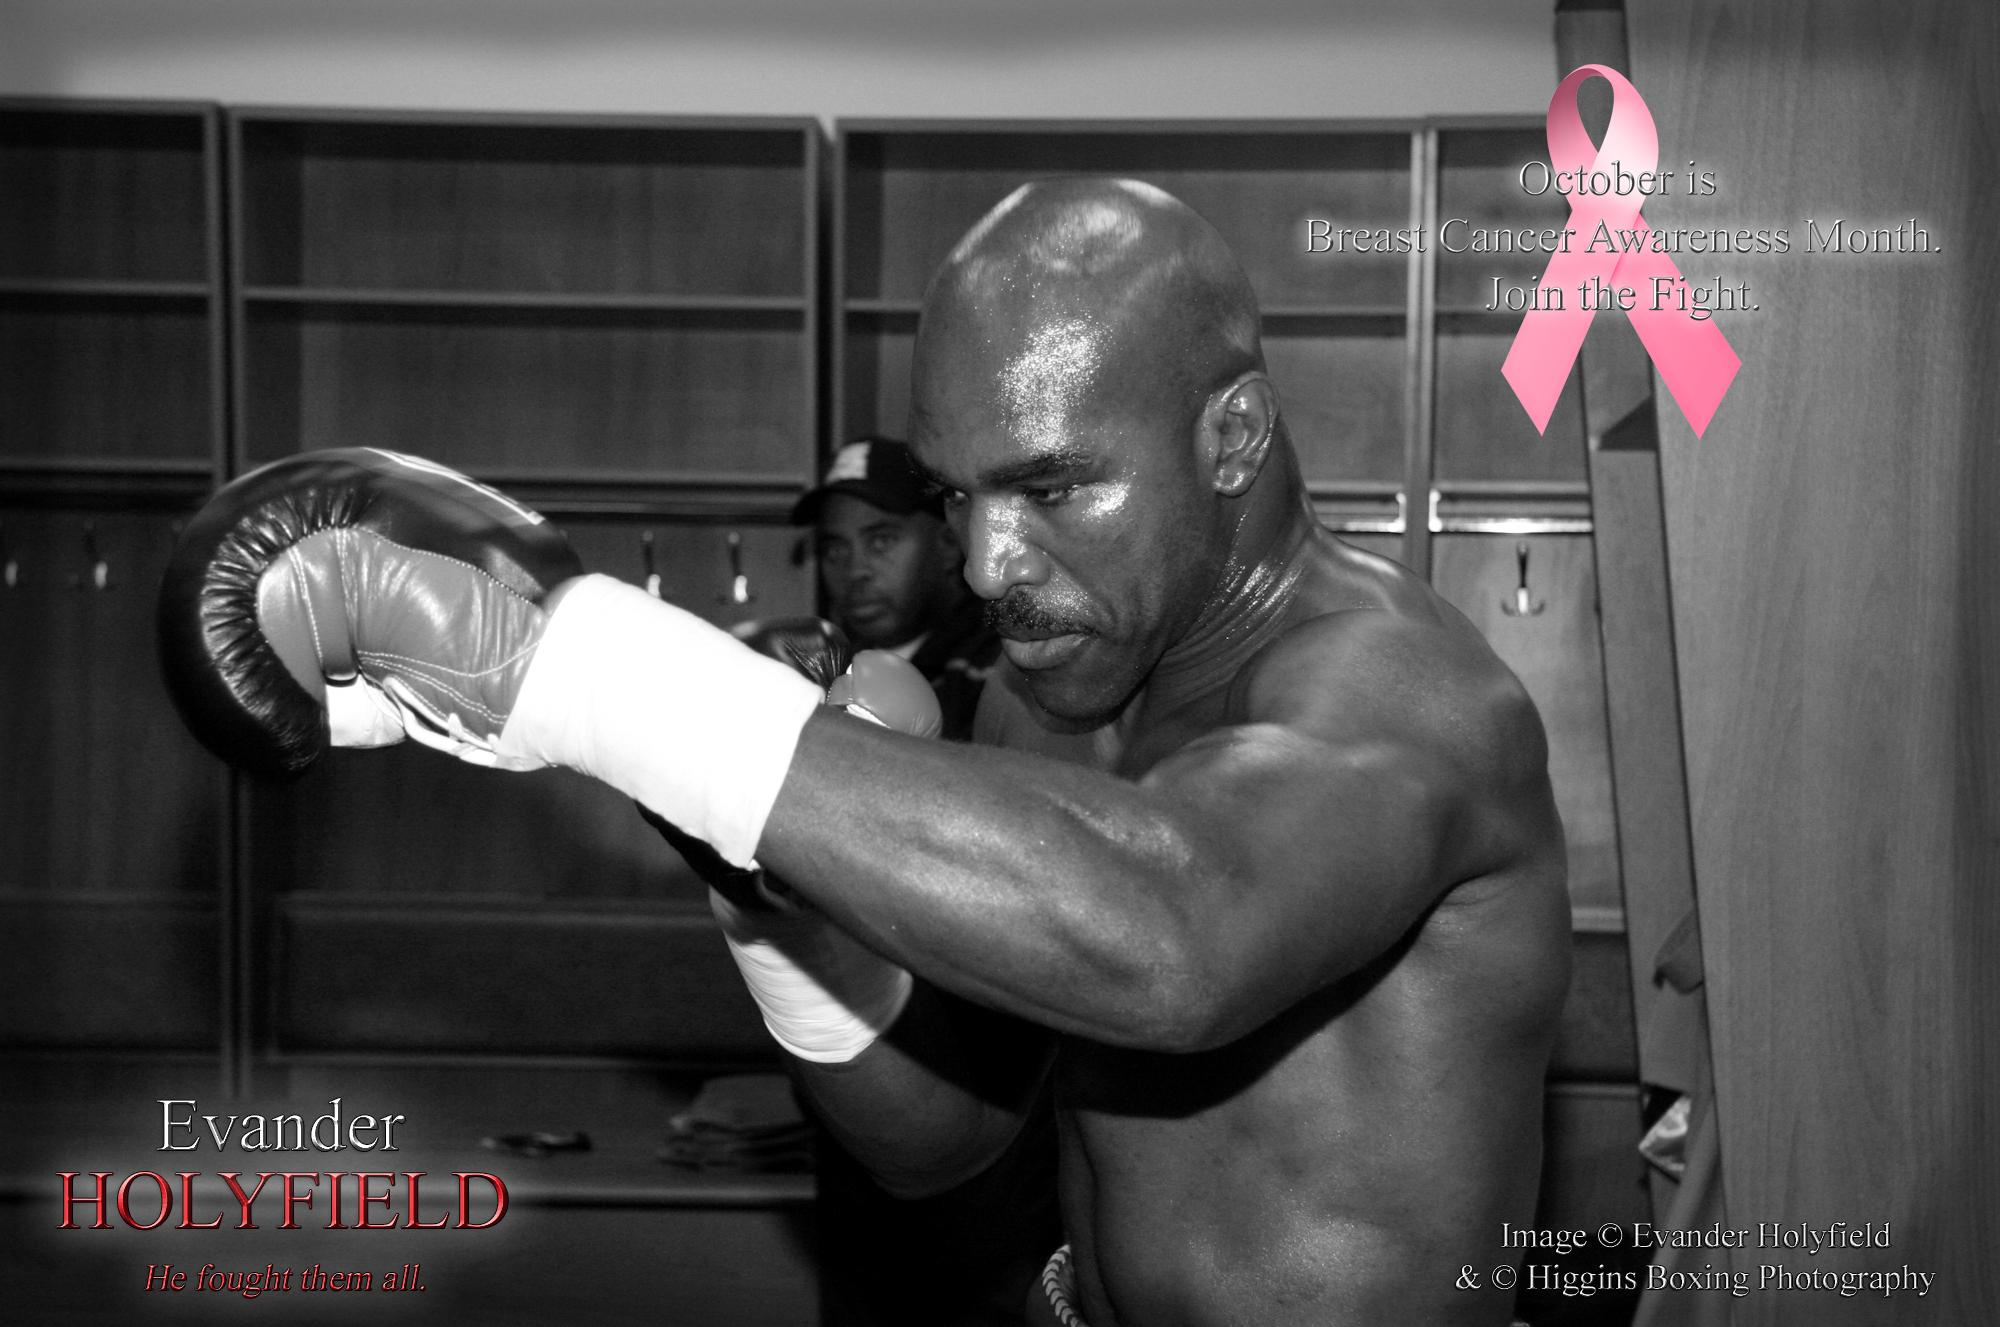 RT @holyfield: October is #BreastCancerAwarenessMonth – Join the Fight. http://t.co/GtQkUWOhLT